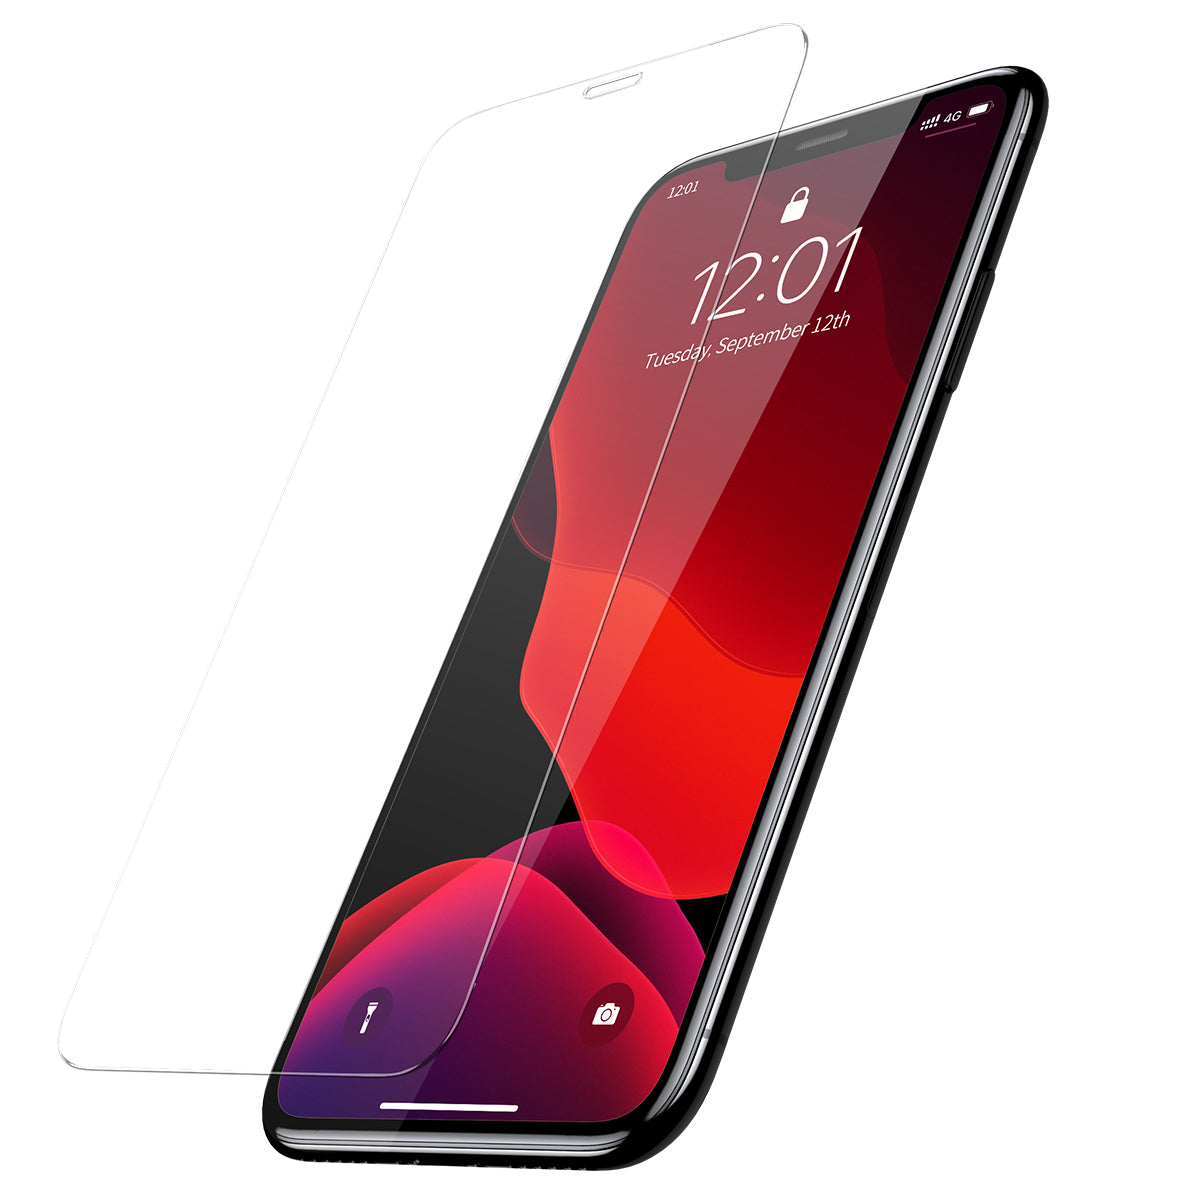 BASEUS 0.3mm Full-glass Tempered Glass Film for iPhone 11 Pro Max / 11 Pro / 11 / XS Max / XS / X / XR